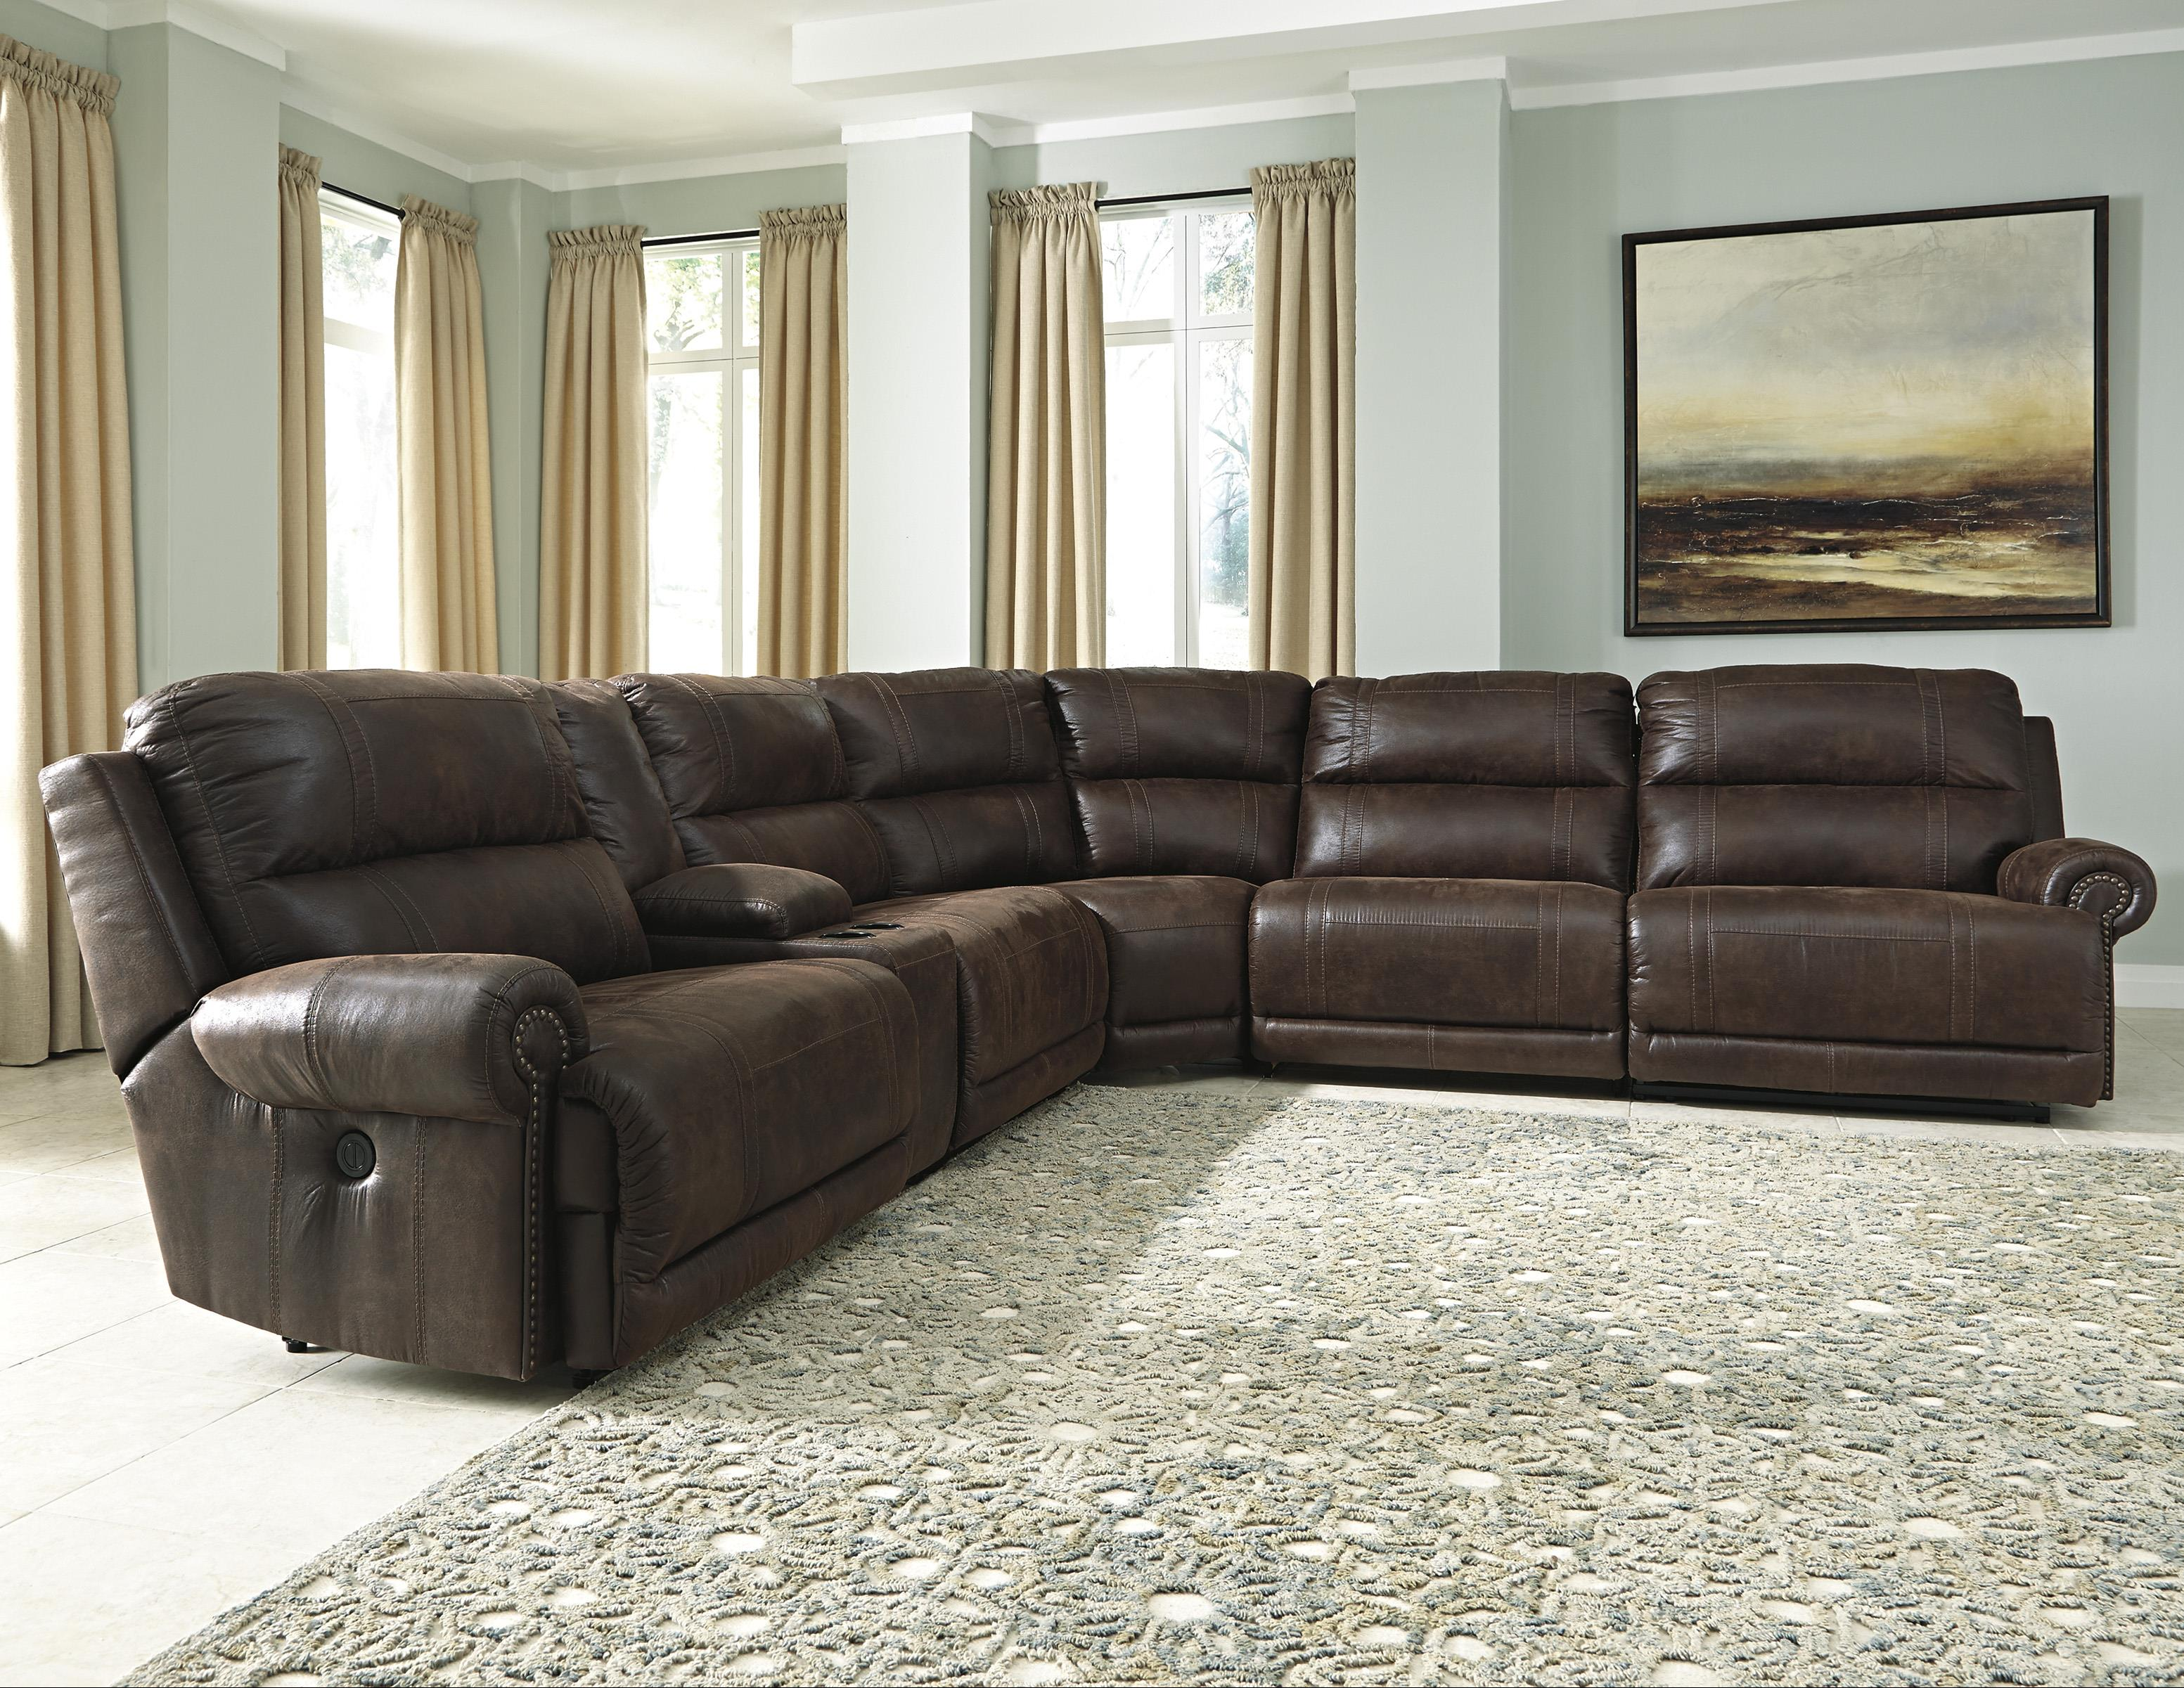 Signature Design by Ashley Luttrell 6Pc Power Reclining Sectional with Console - Item Number: 9310158+57+19+77+46+62